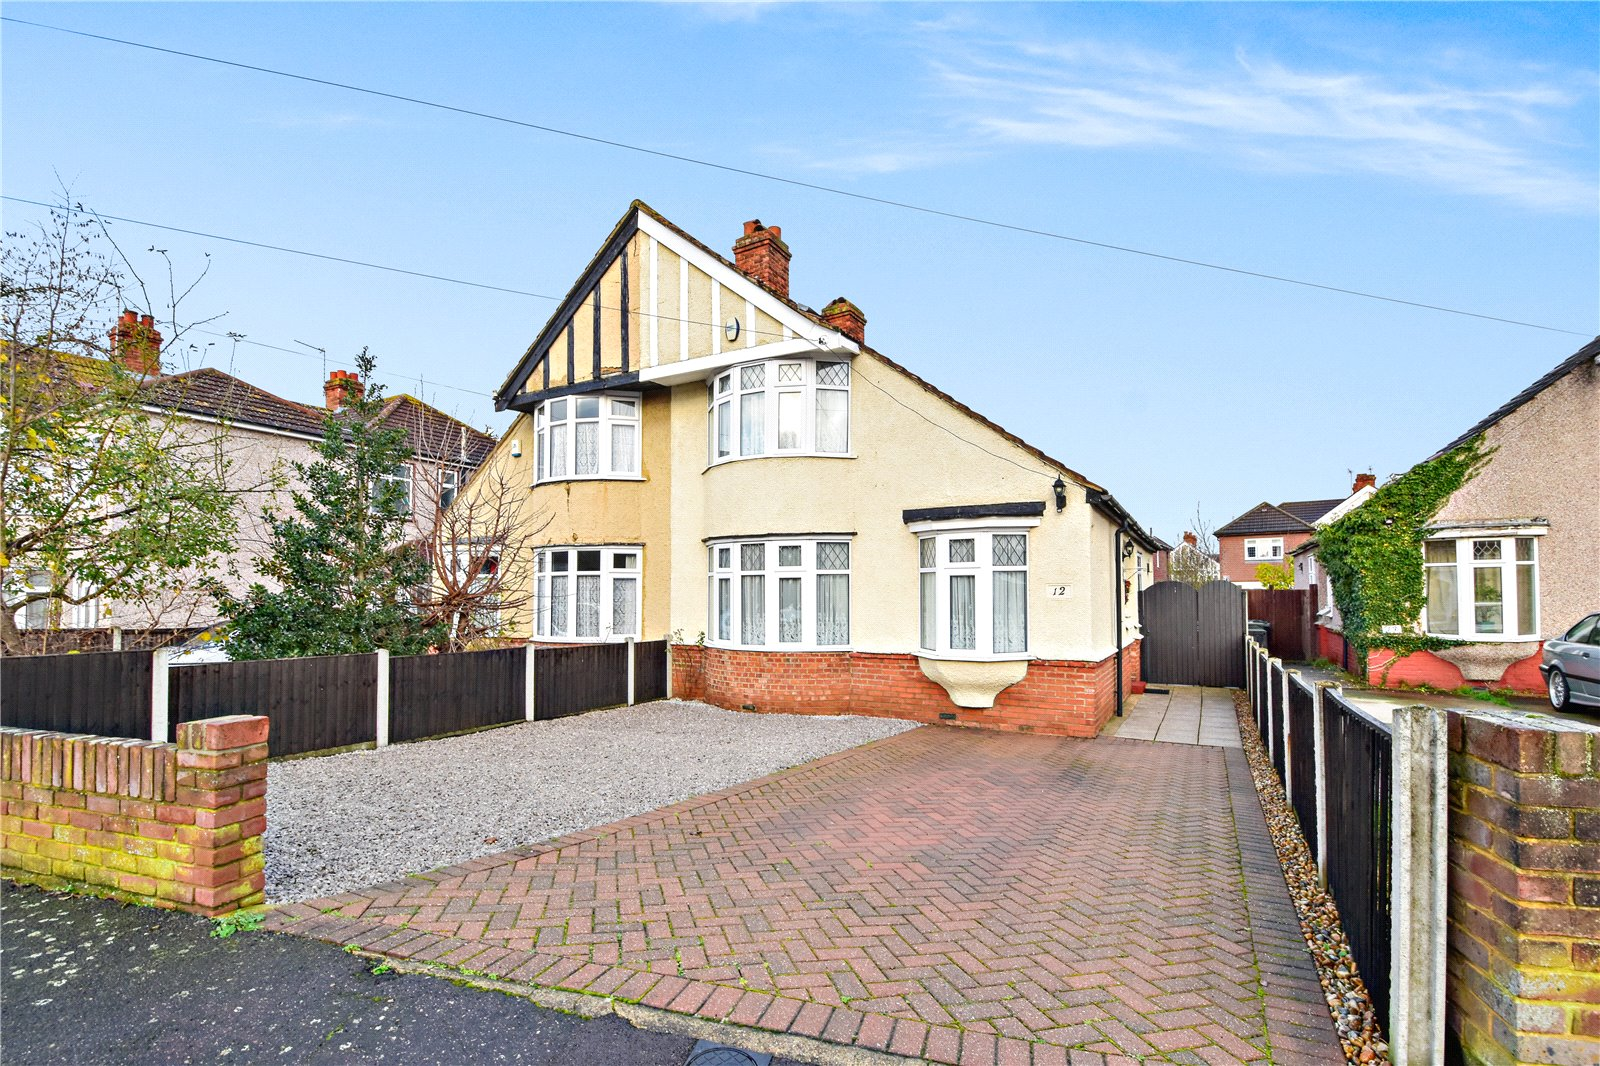 Heathview Crescent, West Dartford, Kent, DA1